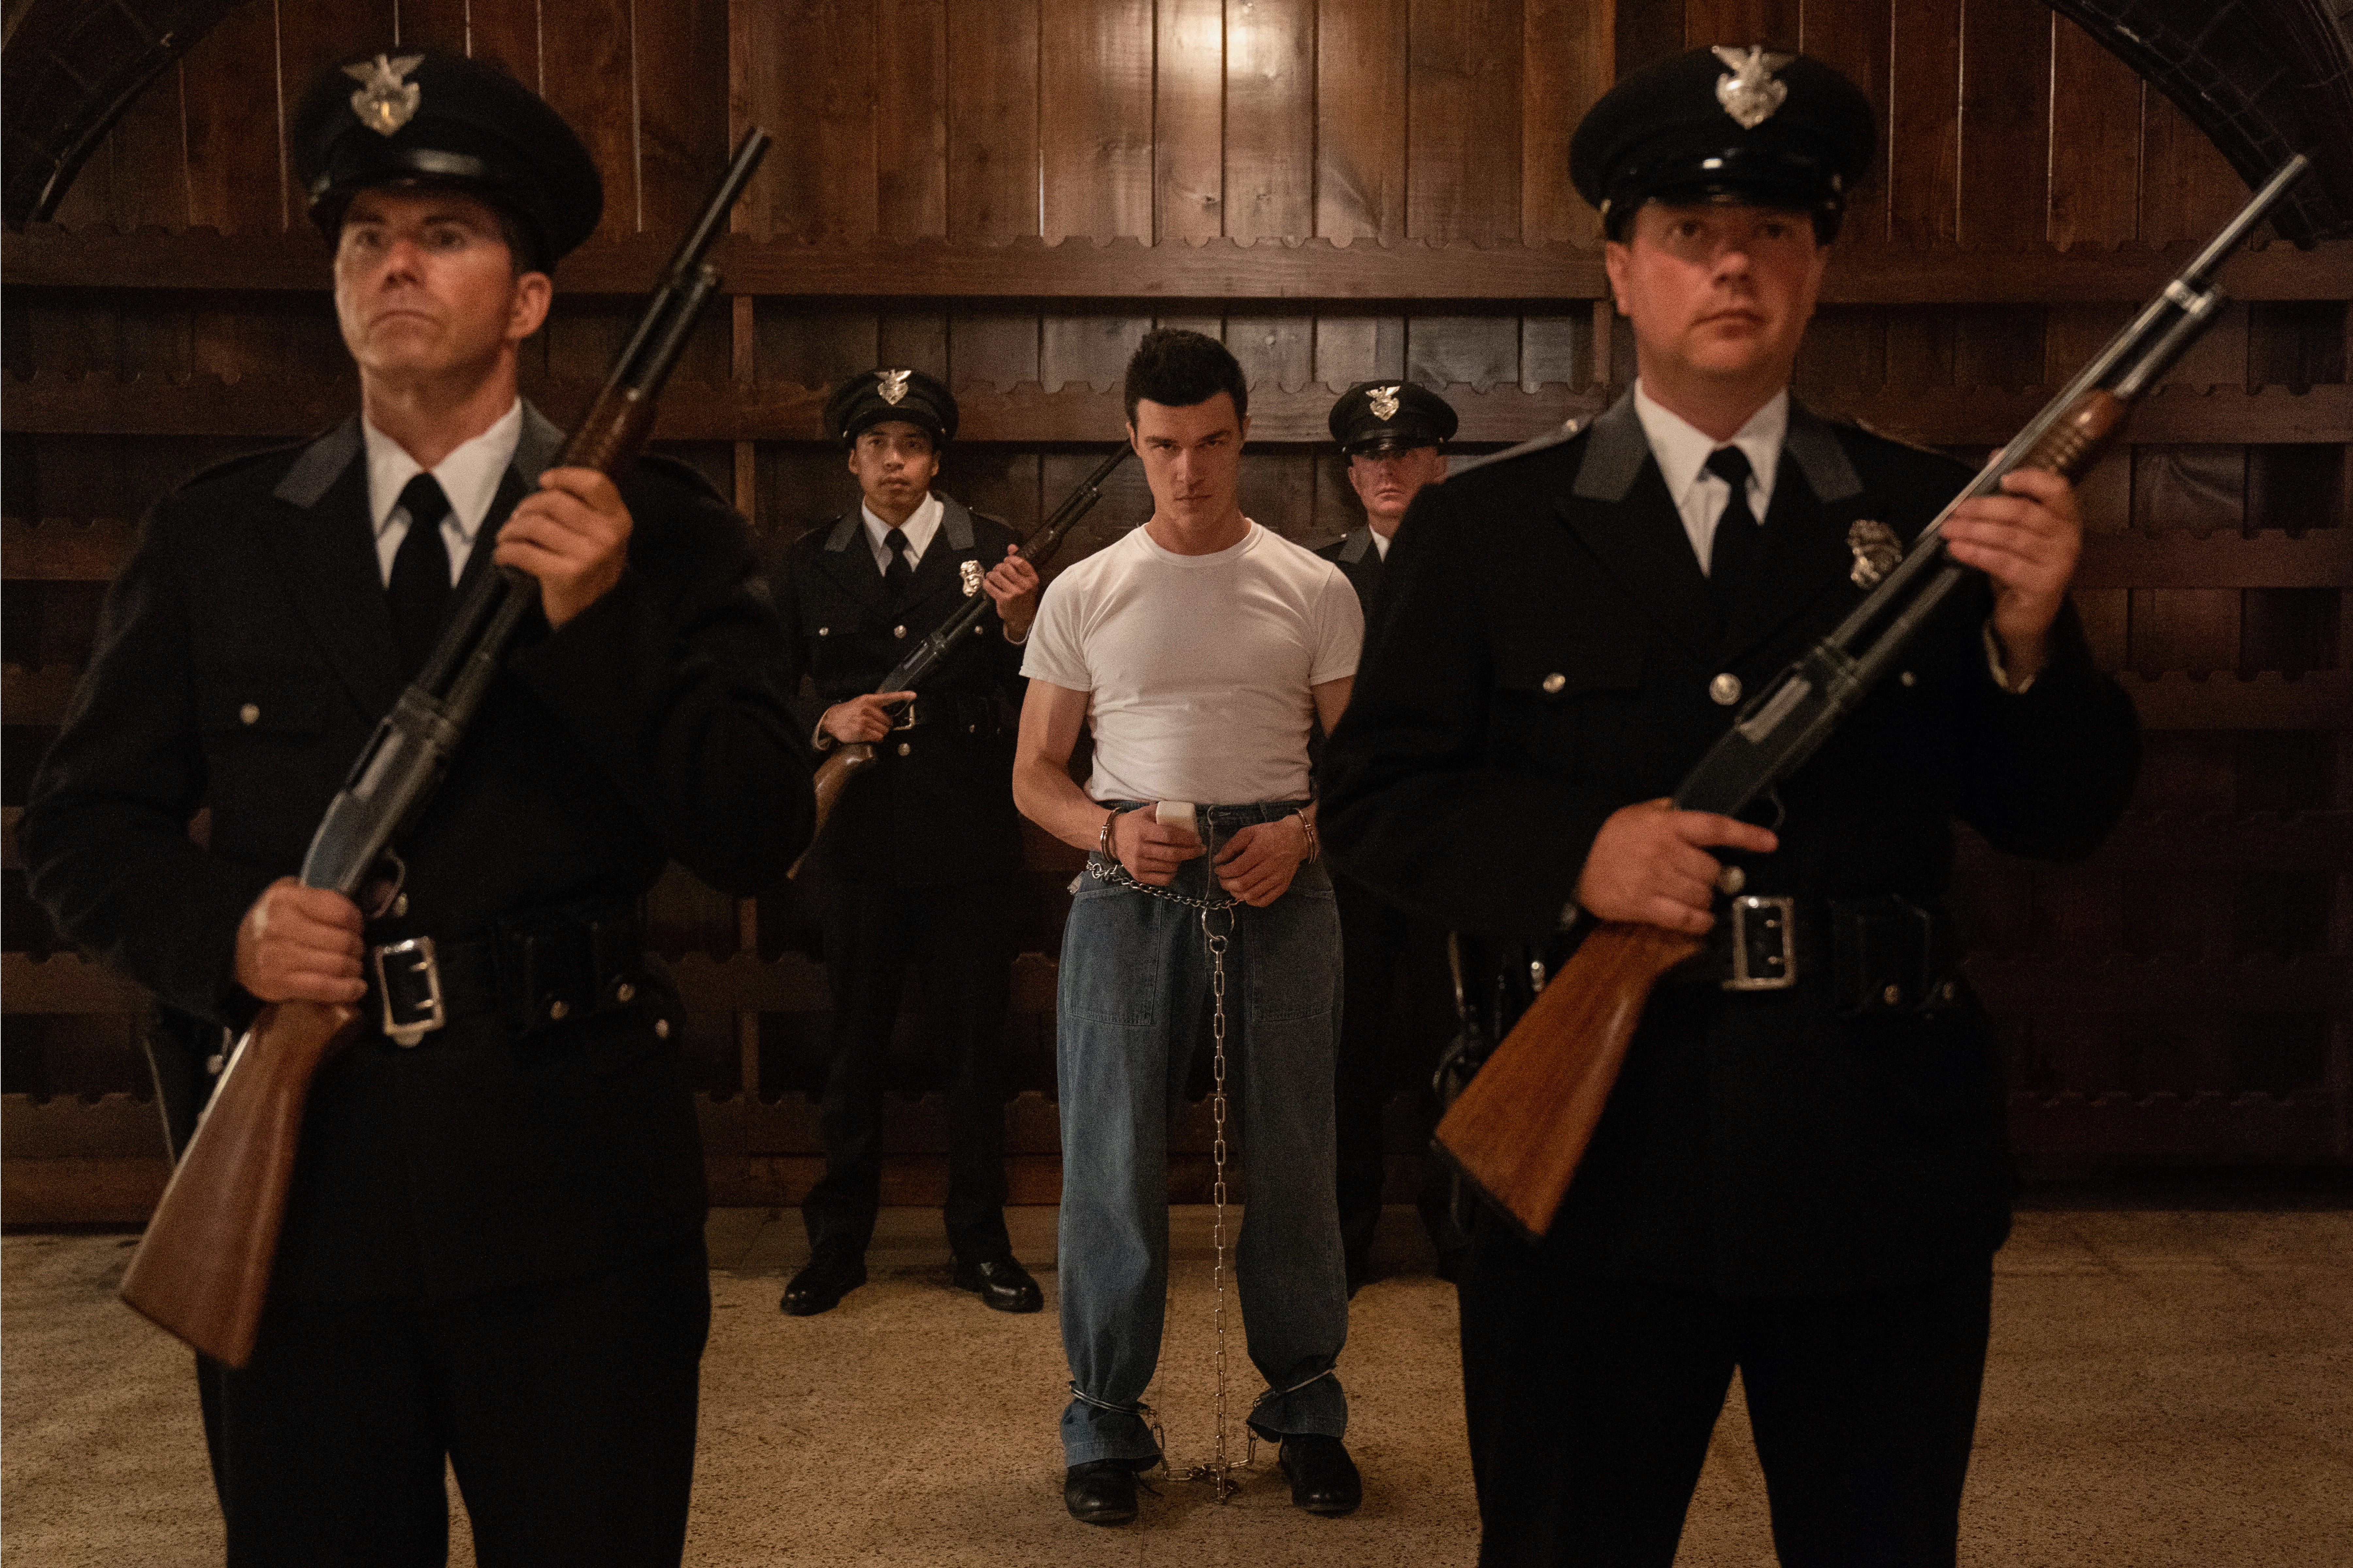 Edmund Tolleson looks deranged in a white muscle-shirt, surrounded by rifle-carrying guards.